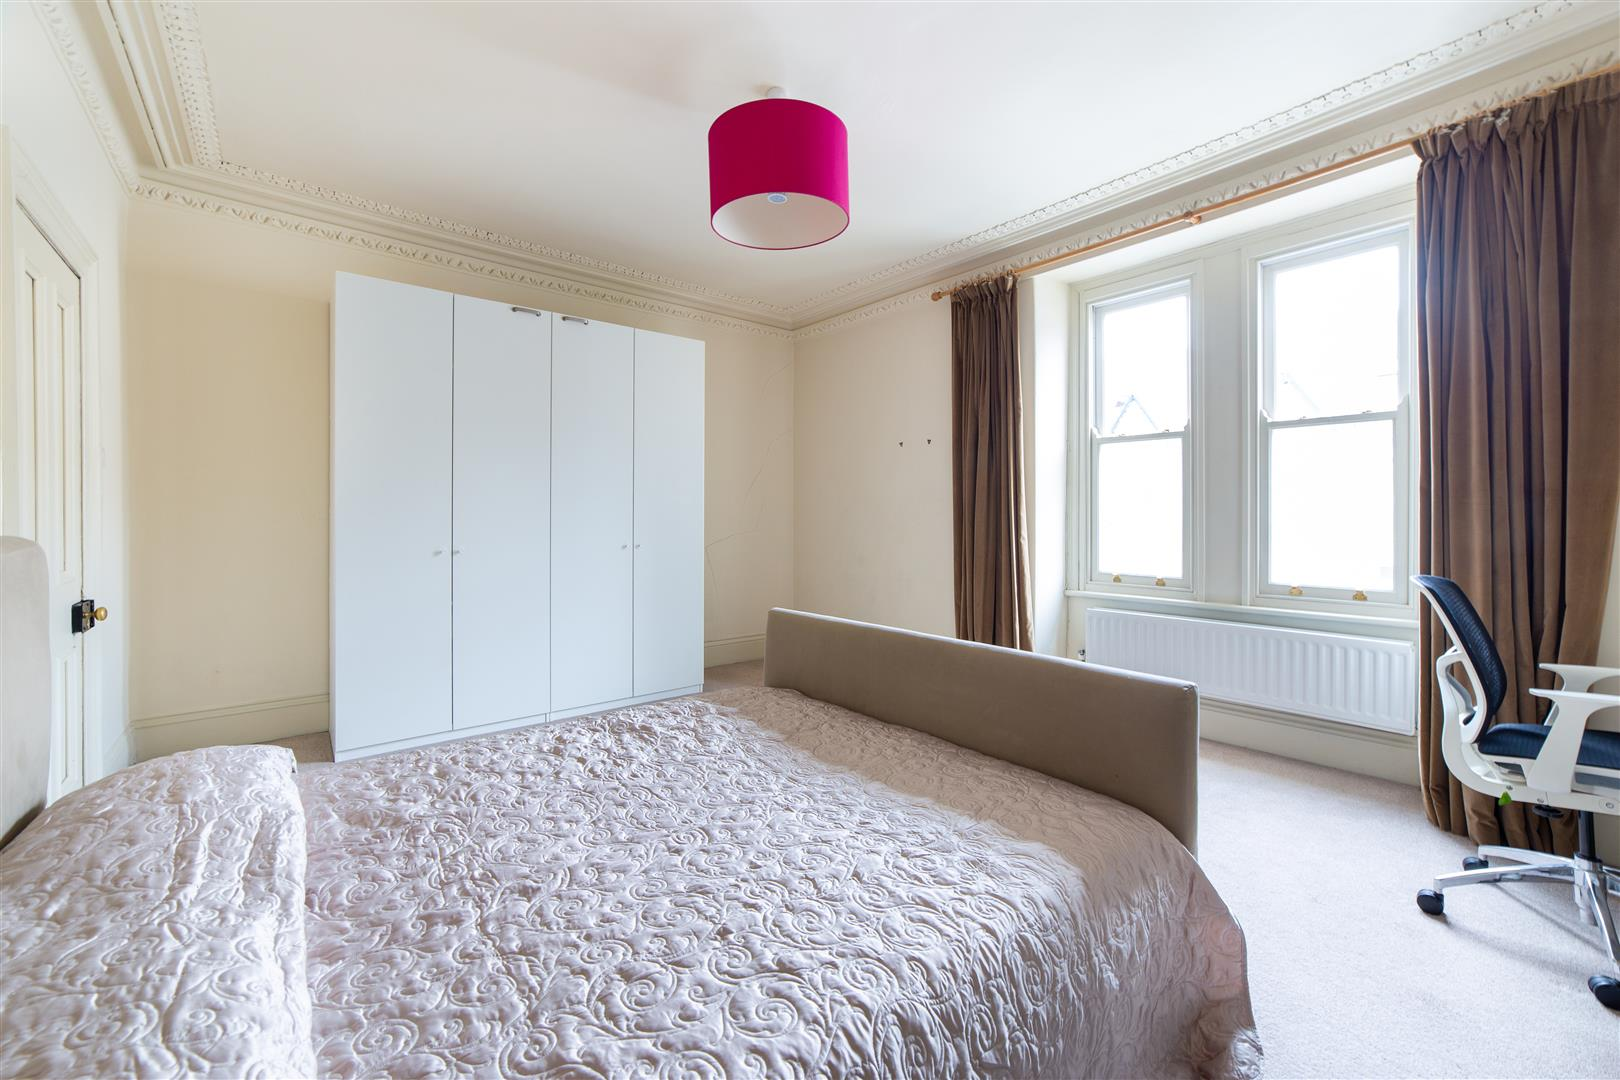 4 bed terraced house to rent in Newcastle Upon Tyne, NE6 5NU  - Property Image 7